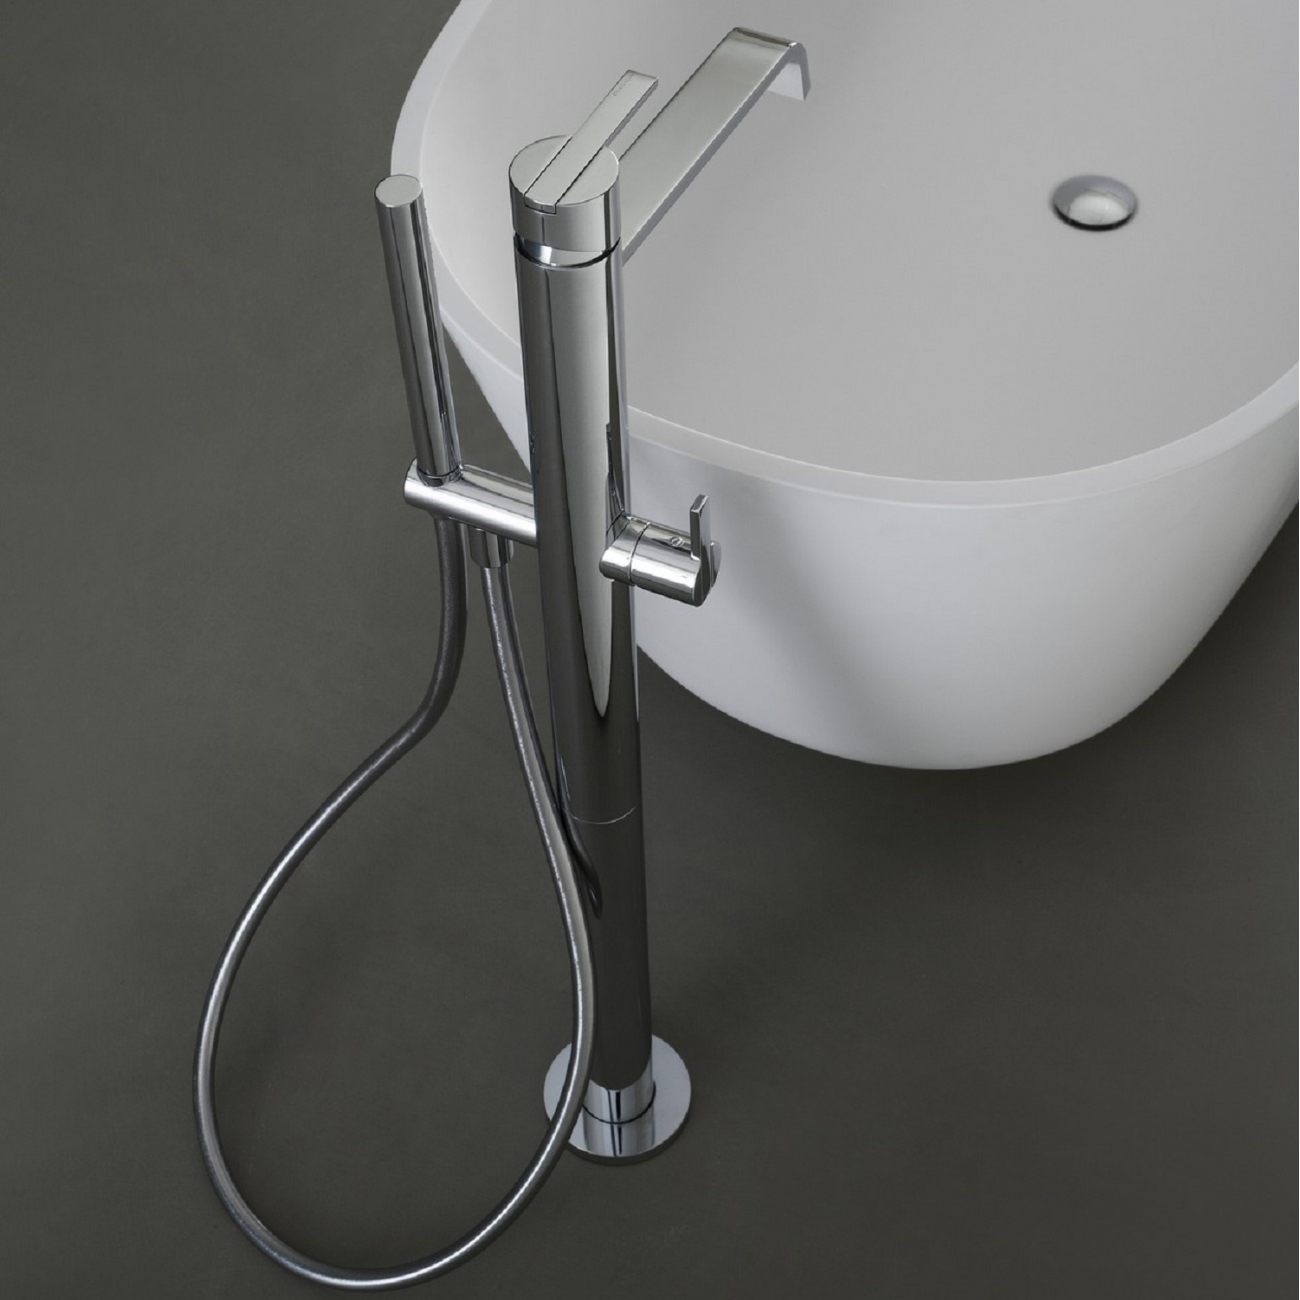 BIKAPPA Antonio Lupi Freestanding Bath Mixed Lever